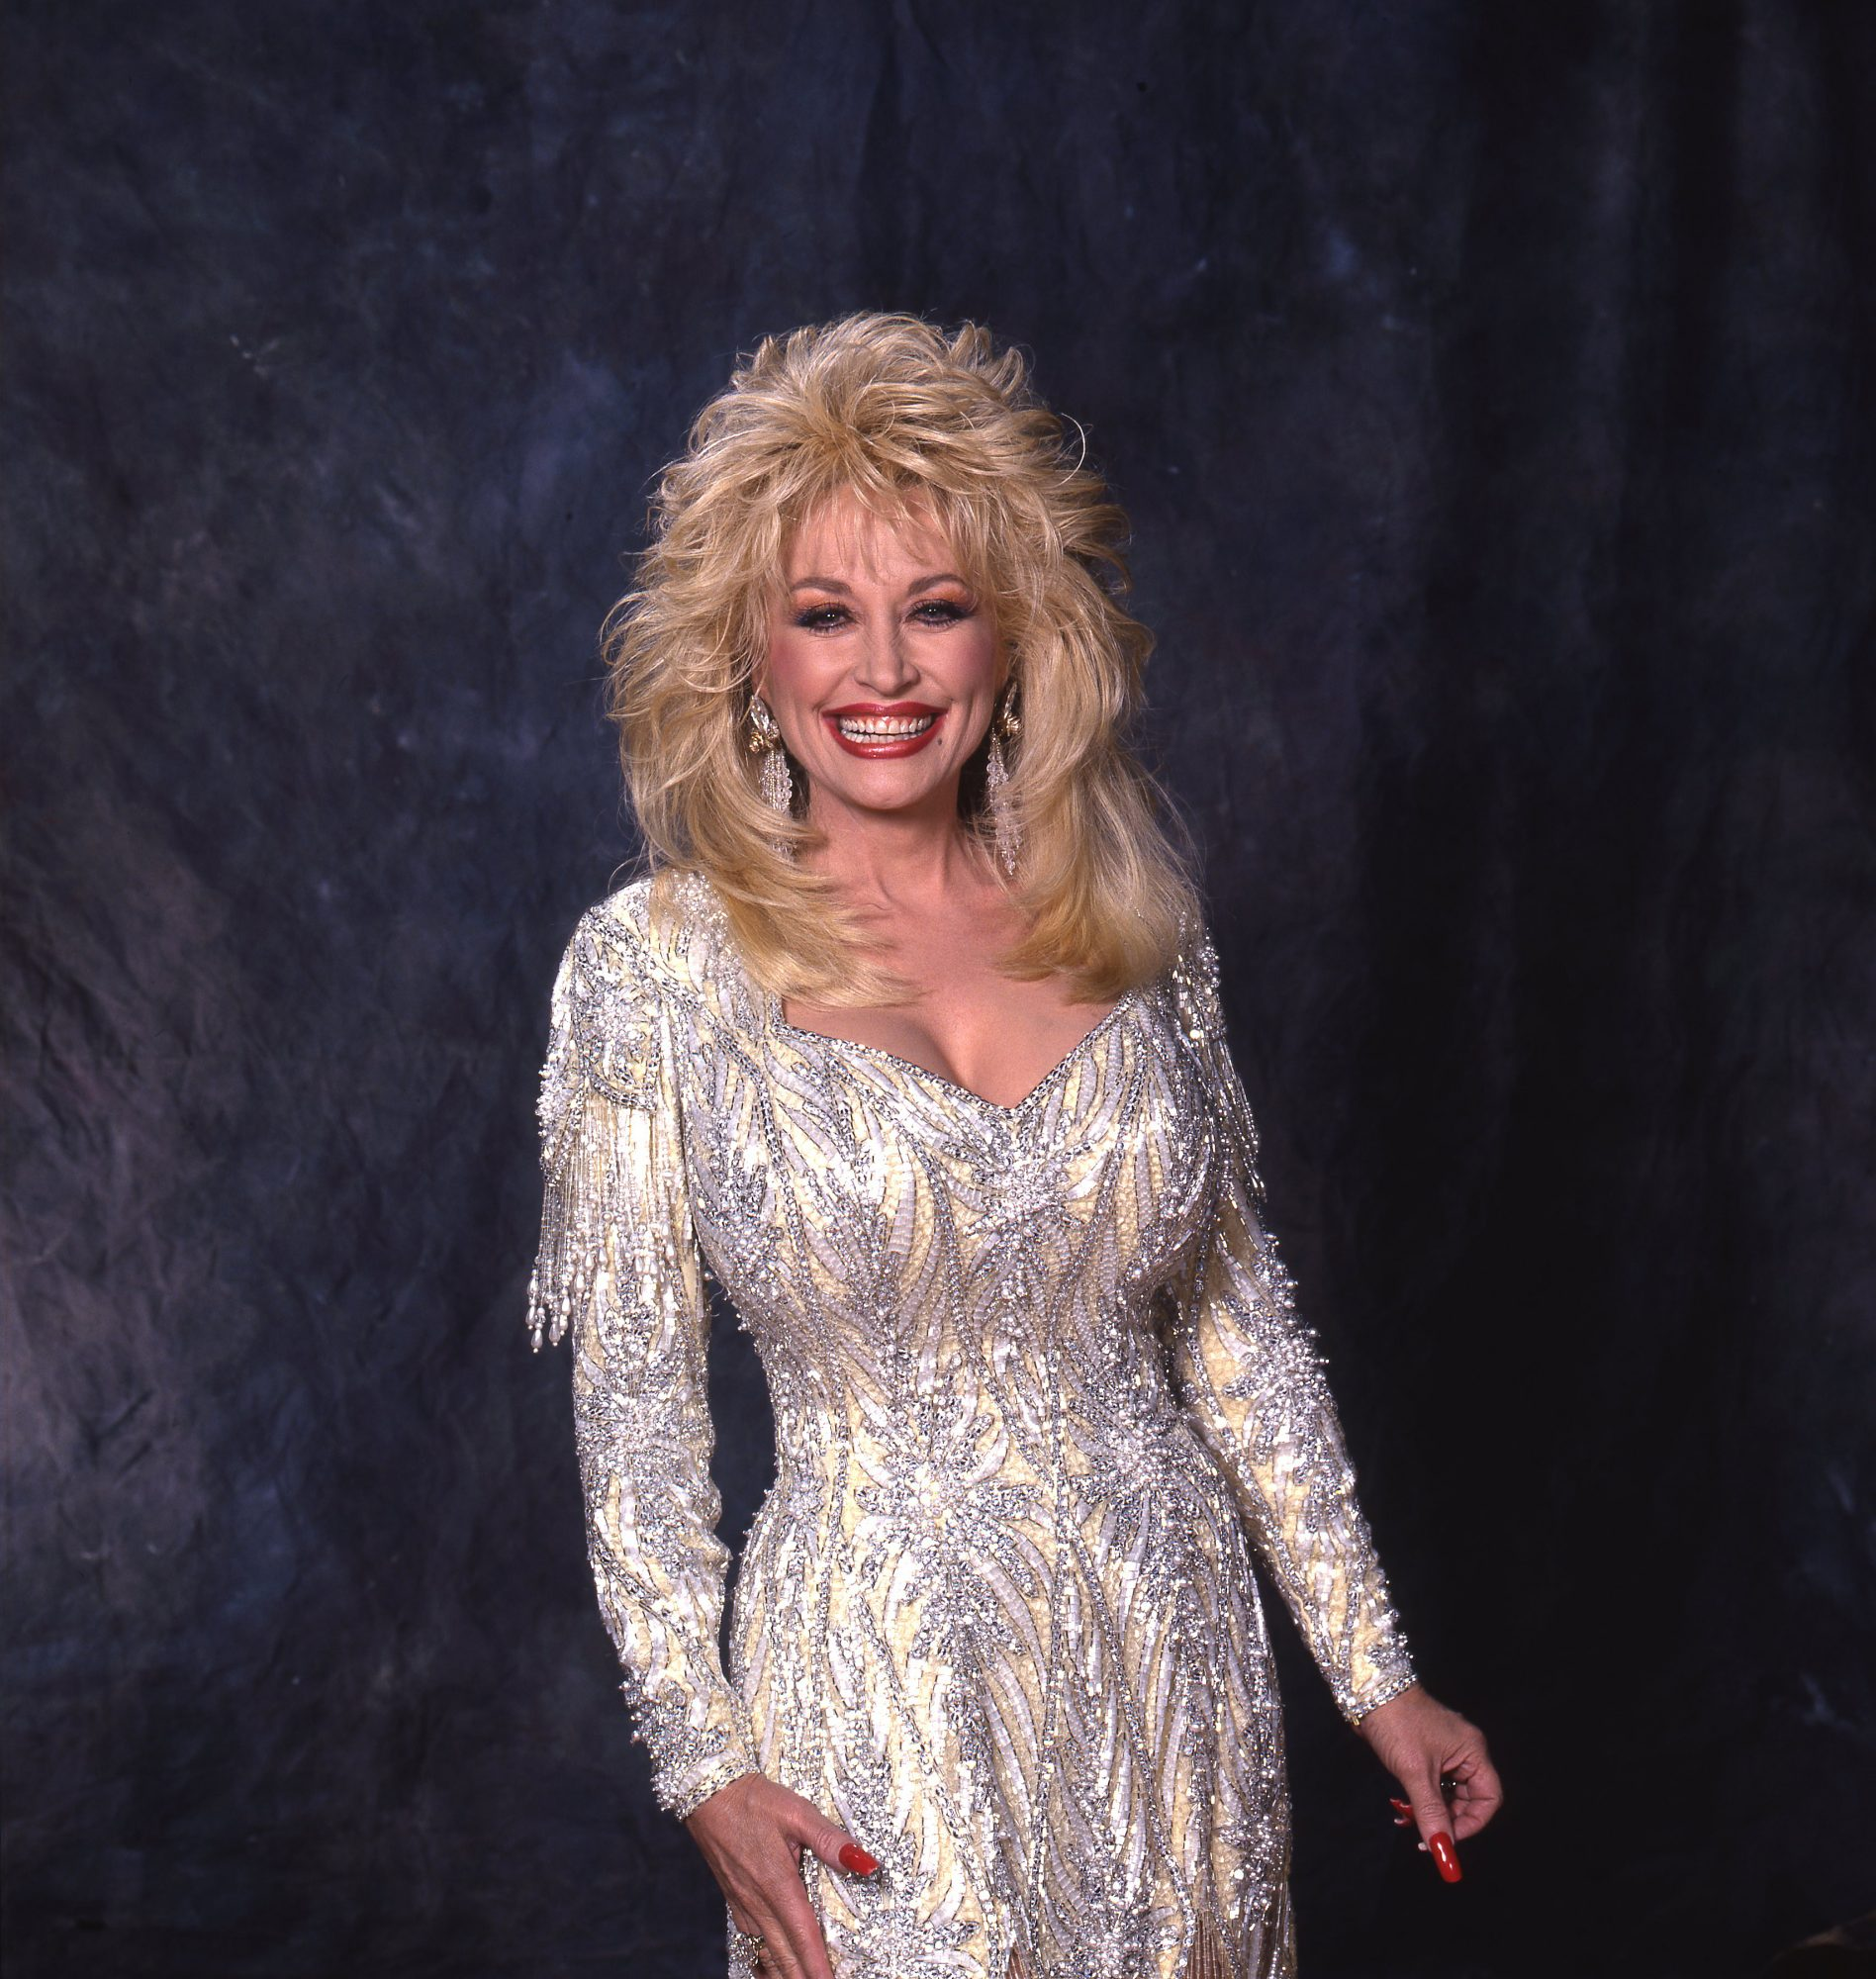 Dolly Parton Poses for the Camera